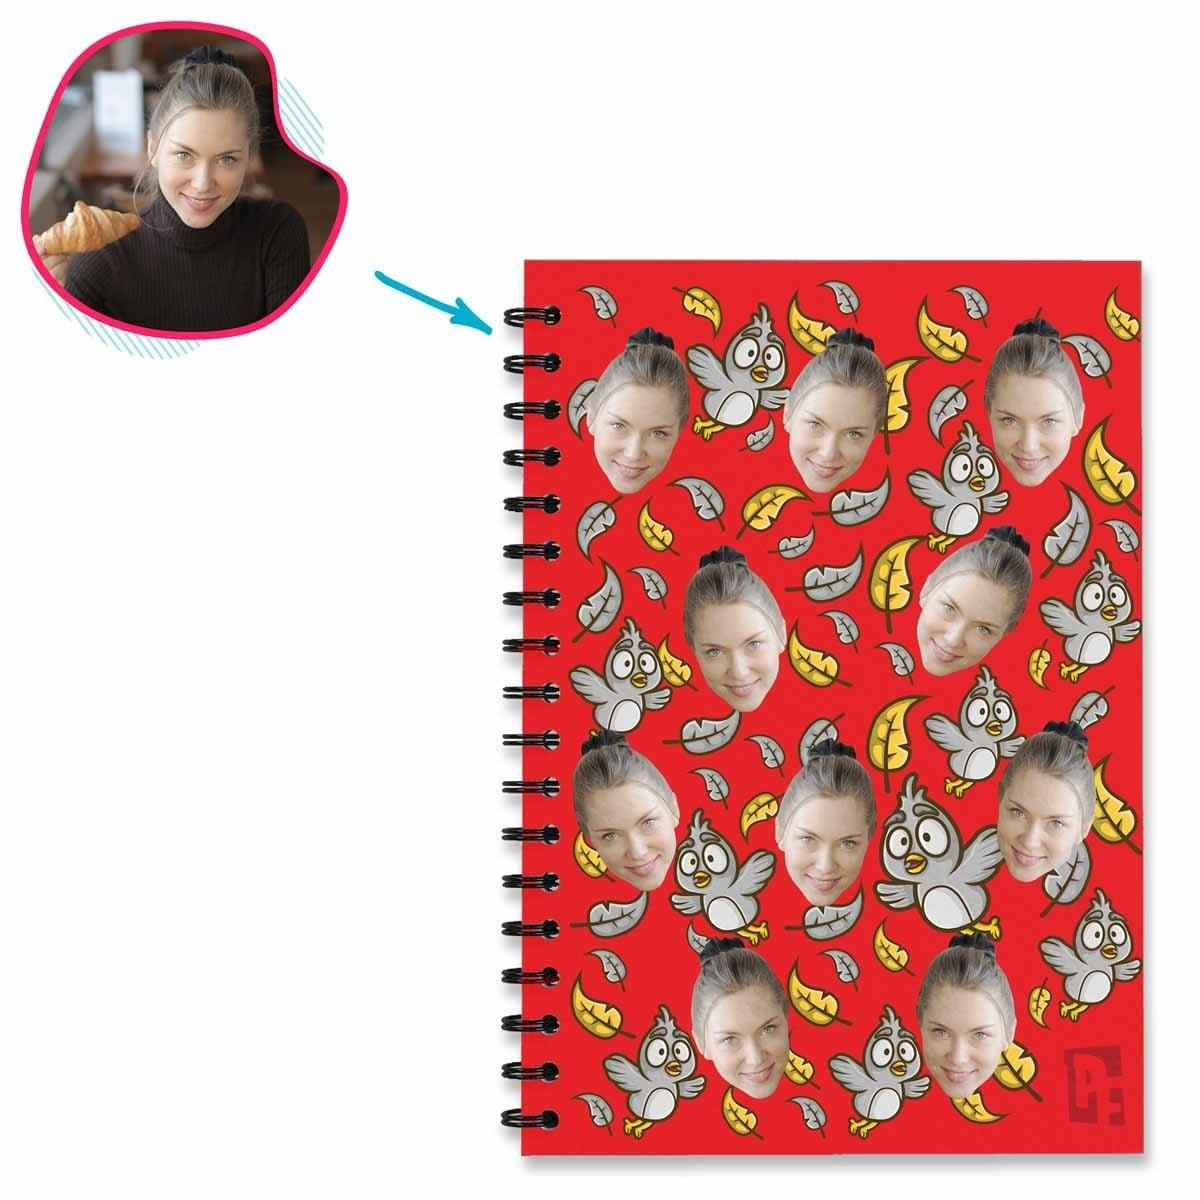 red Bird Notebook personalized with photo of face printed on them